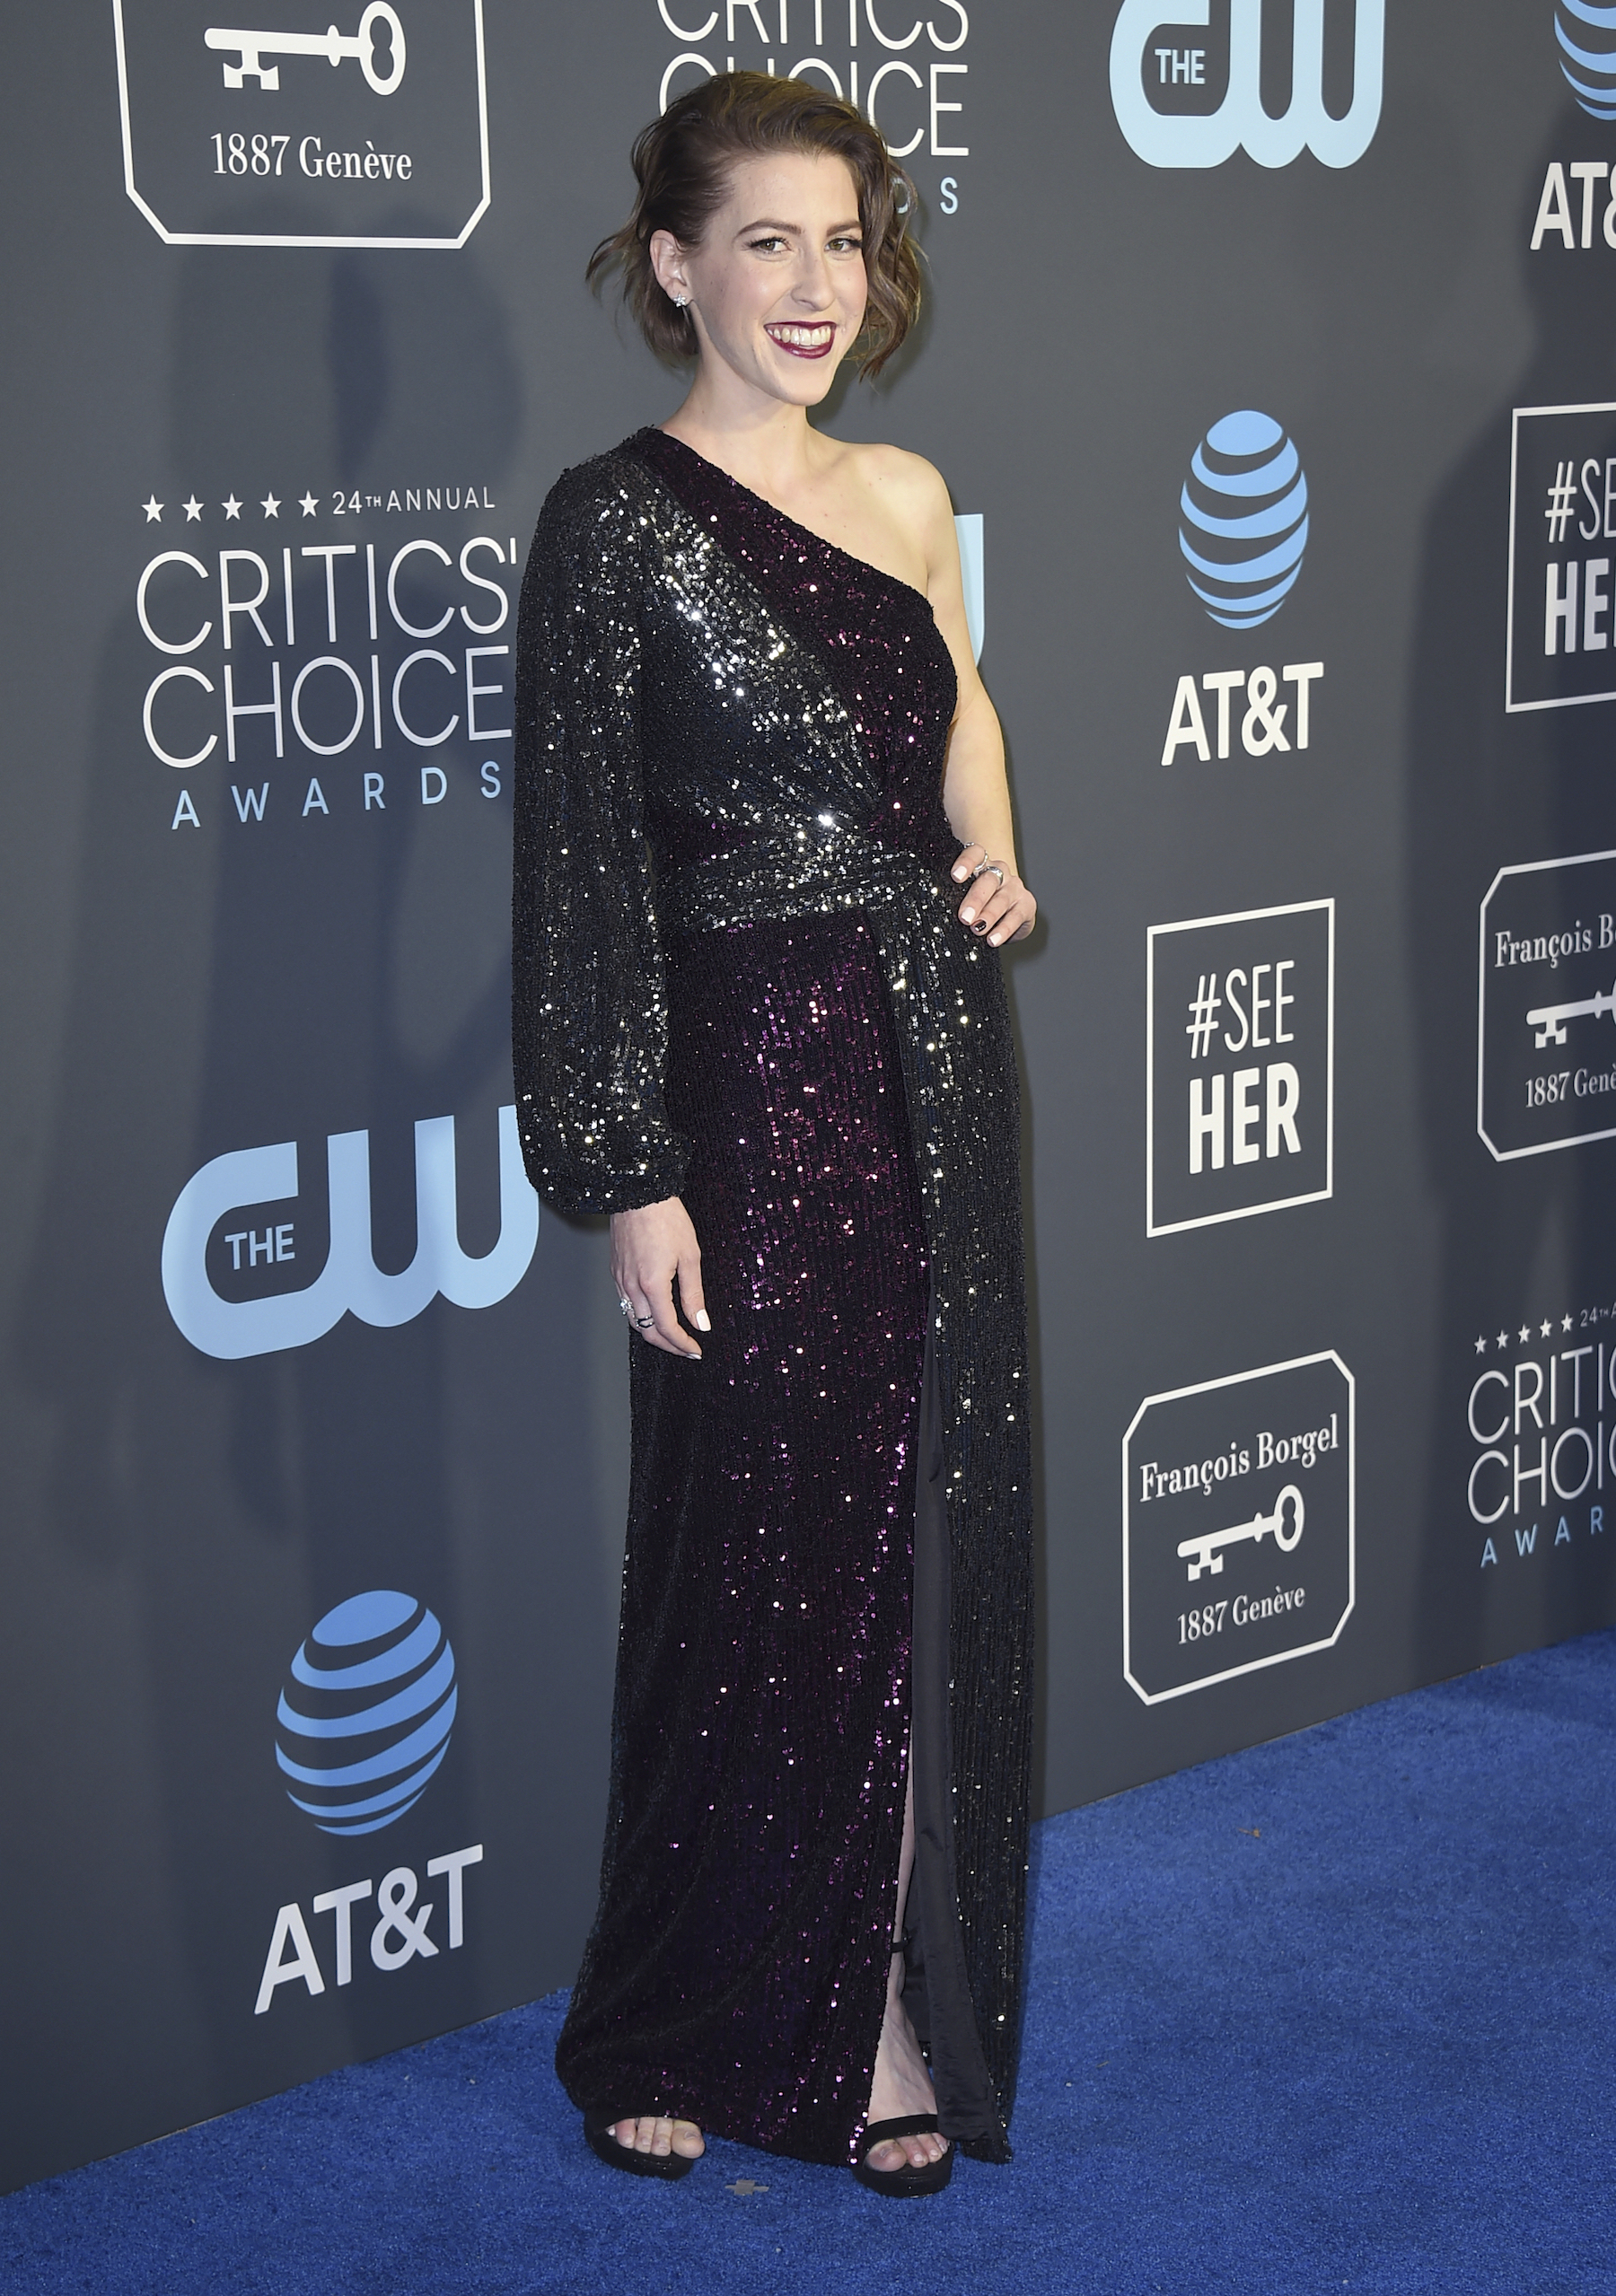 <div class='meta'><div class='origin-logo' data-origin='AP'></div><span class='caption-text' data-credit='Jordan Strauss/Invision/AP'>Eden Sher arrives at the 24th annual Critics' Choice Awards on Sunday, Jan. 13, 2019, at the Barker Hangar in Santa Monica, Calif.</span></div>